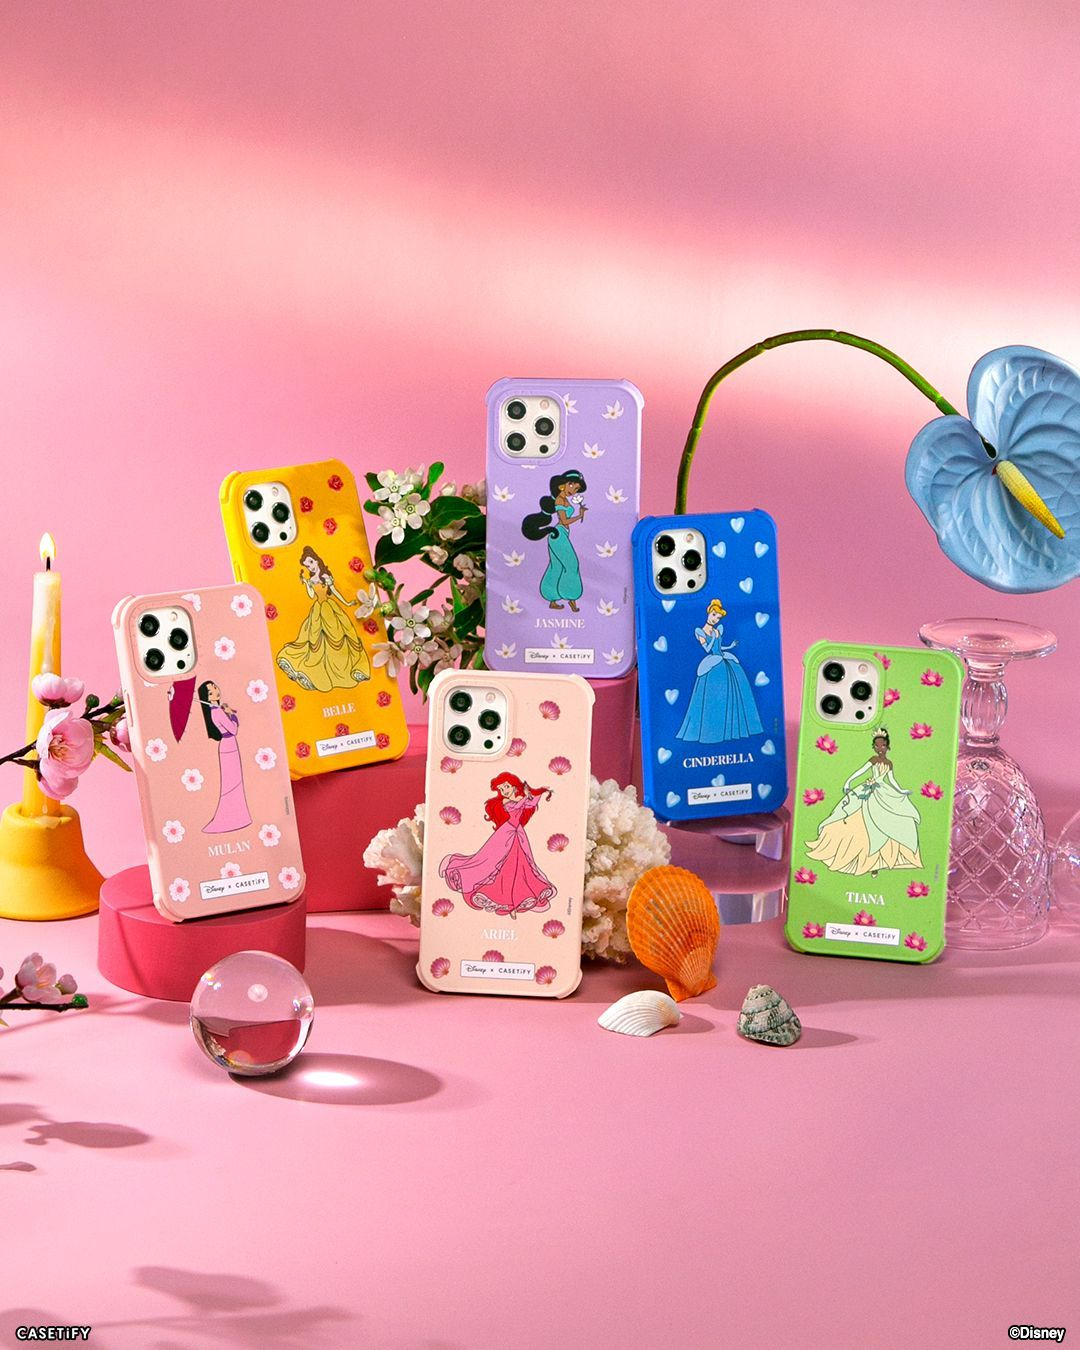 CASETiFY Launches New Disney Princess Collection